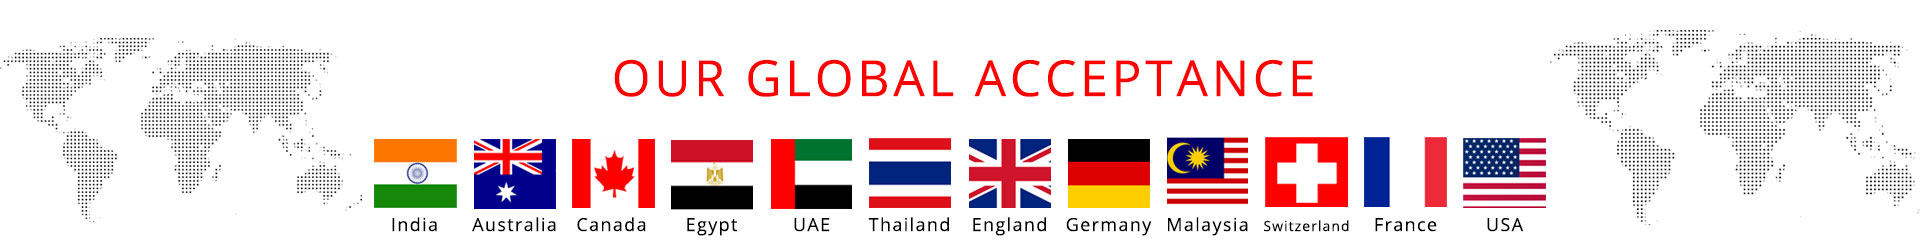 Our Global Acceptance